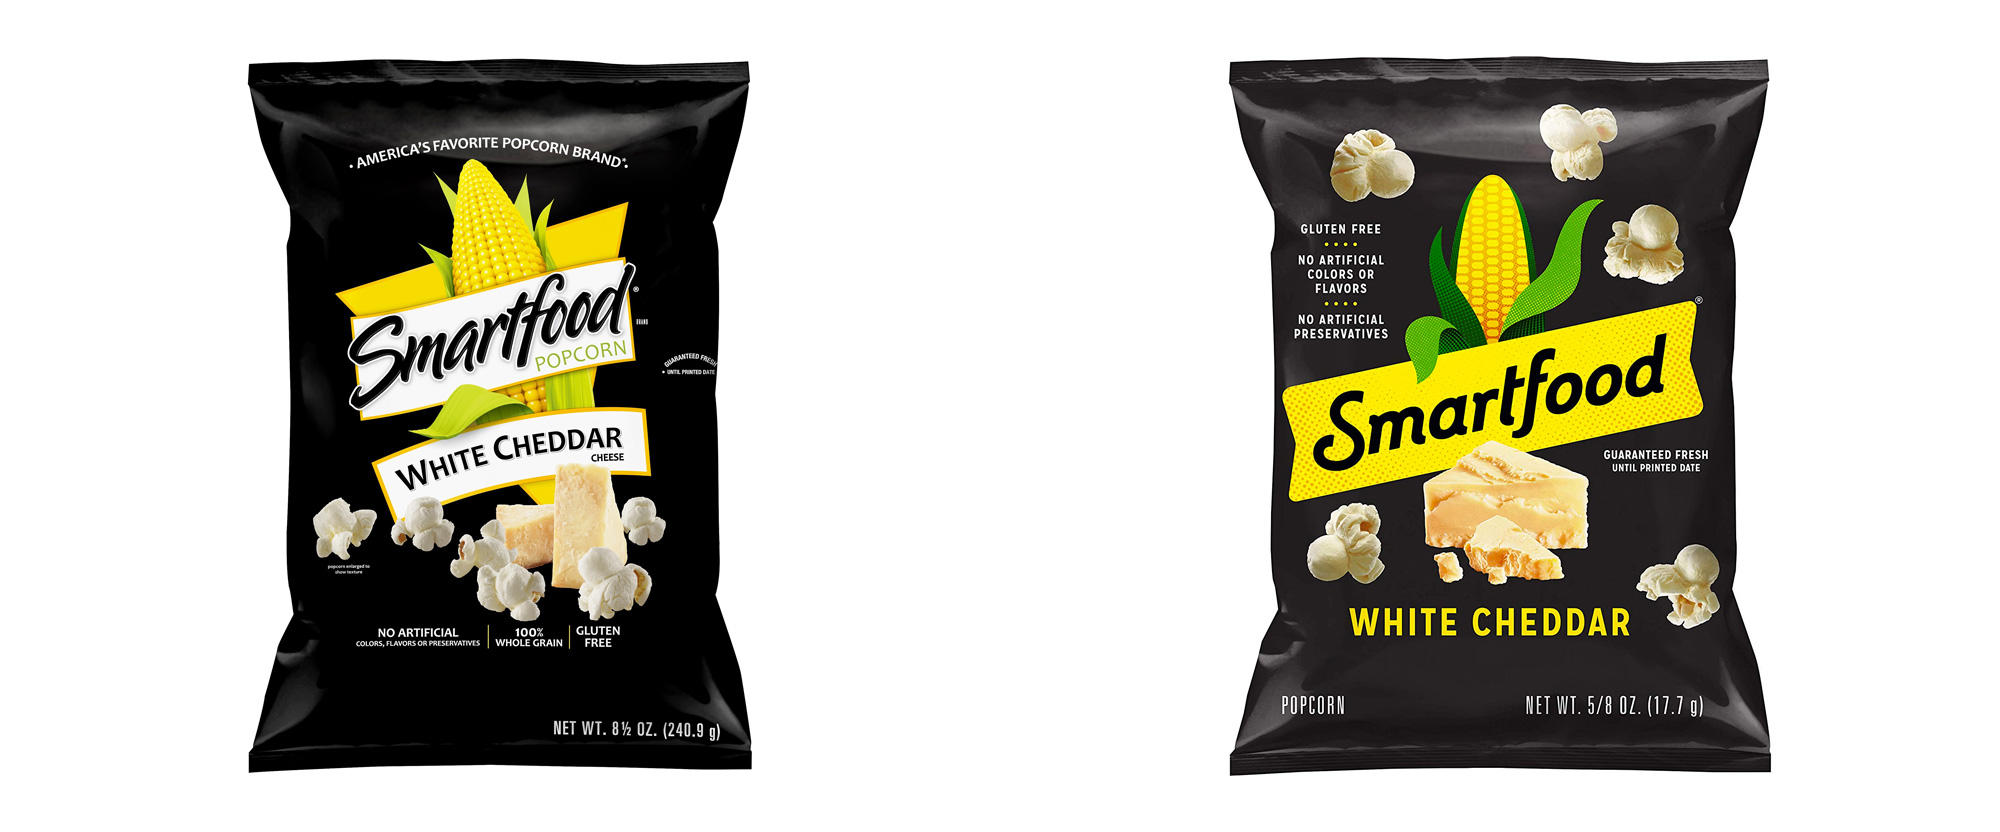 New Logo and Packaging for Smartfood